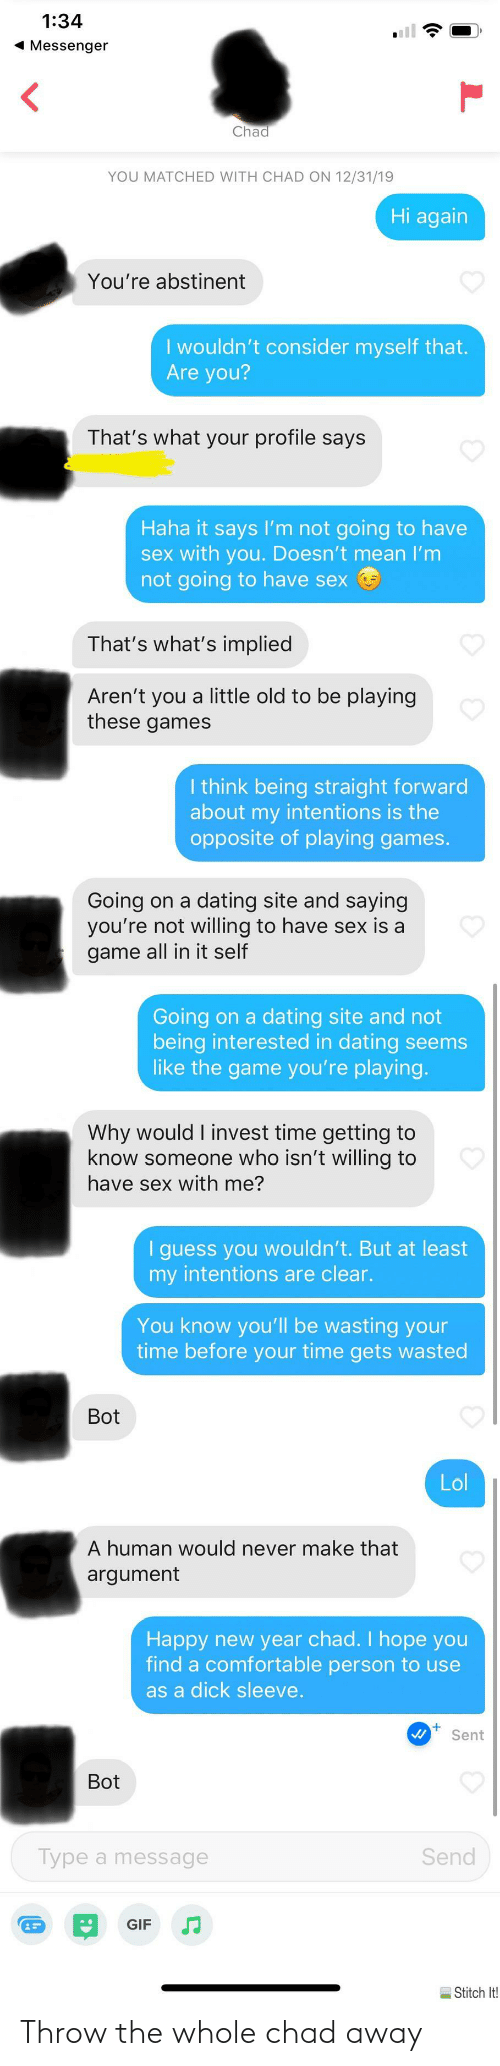 Comfortable, Dating, and Gif: 1:34  1 Messenger  Chad  YOU MATCHED WITH CHAD ON 12/31/19  Hi again  You're abstinent  I wouldn't consider myself that.  Are you?  That's what your profile says  Haha it says l'm not going to have  sex with you. Doesn't mean I'm  not going to have sex  That's what's implied  Aren't you a little old to be playing  these games  I think being straight forward  about my intentions is the  opposite of playing games.  Going on a dating site and saying  you're not willing to have sex is a  game all in it self  Going on a dating site and not  being interested in dating seems  like the game you're playing.  Why would I invest time getting to  know someone who isn't willing to  have sex with me?  I guess you wouldn't. But at least  my intentions are clear.  You know you'll be wasting your  time before your time gets wasted  Bot  Lol  A human would never make that  argument  Happy new year chad. I hope you  find a comfortable person to use  as a dick sleeve.  Sent  Bot  Send  Type a message  GIF  Stitch It! Throw the whole chad away